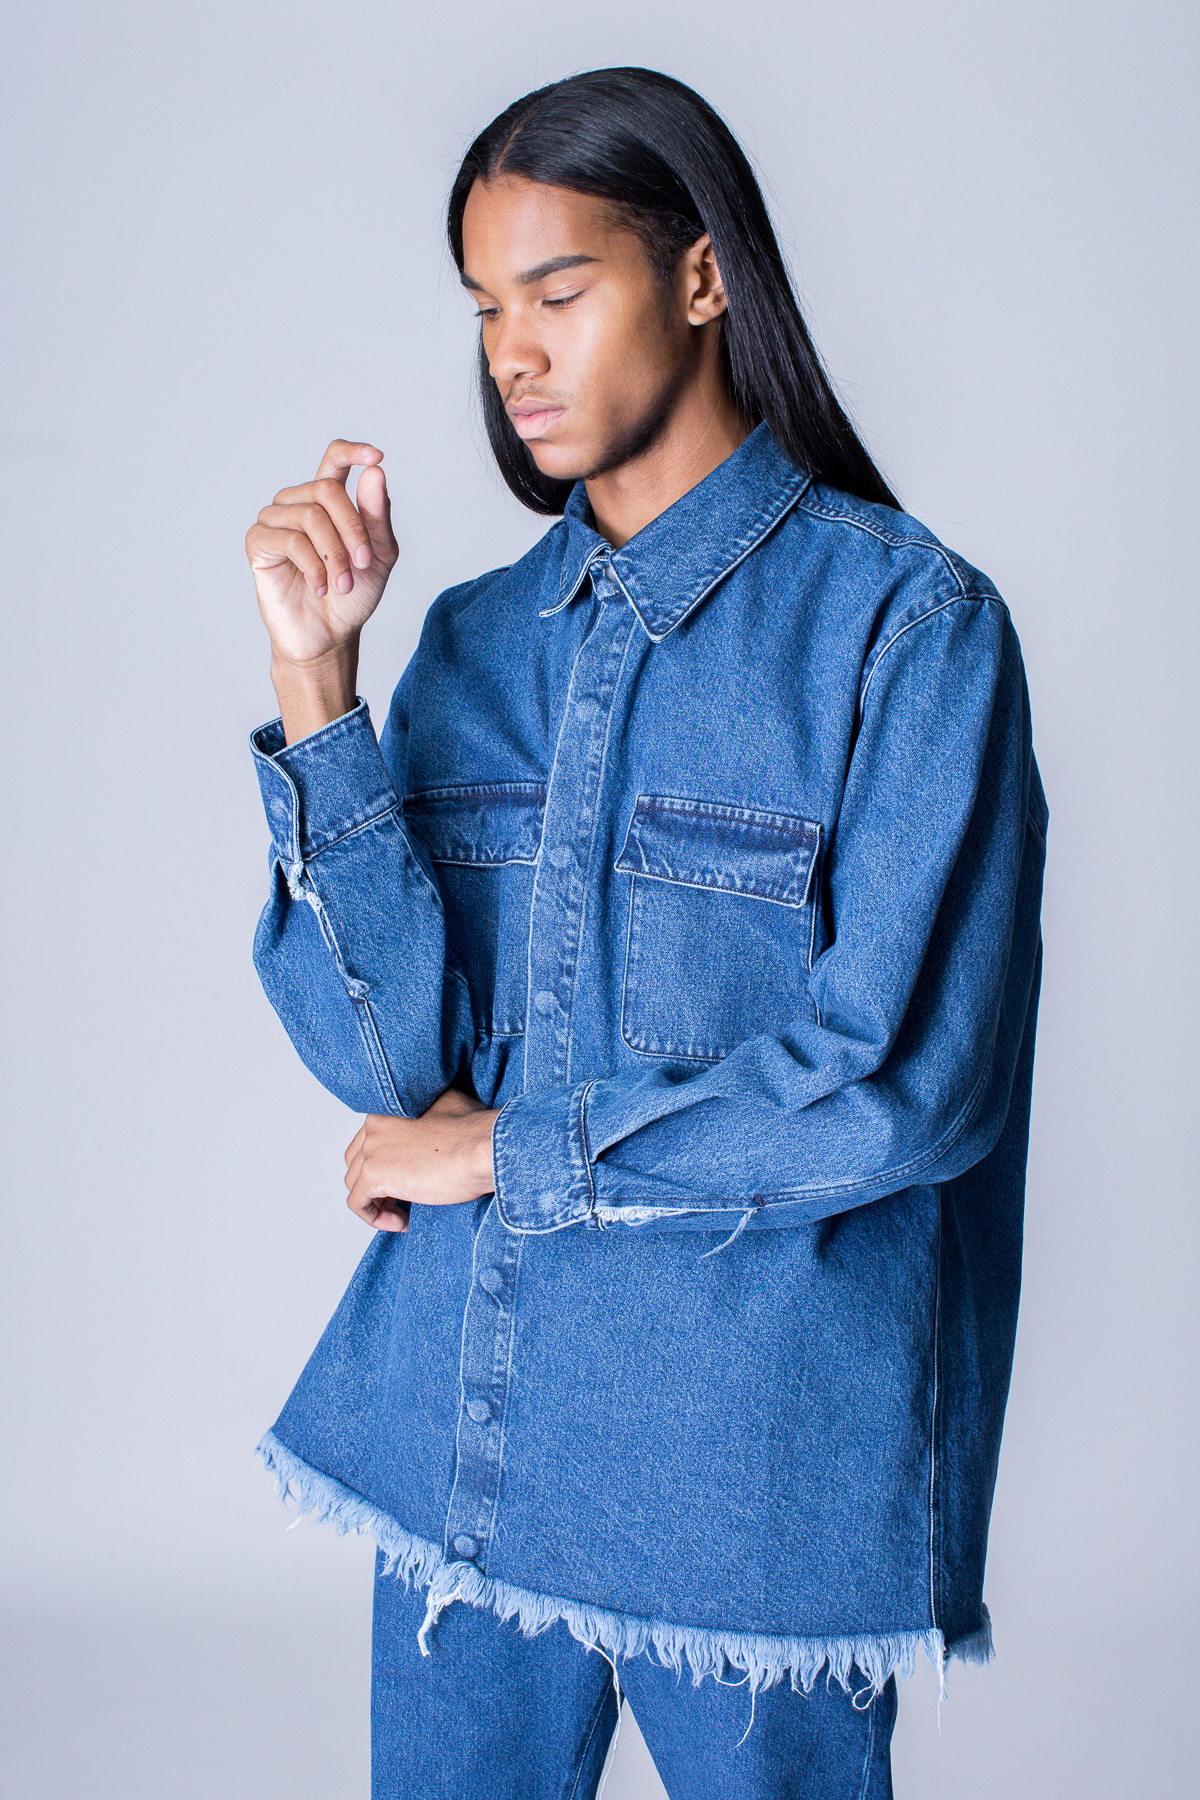 Marques'Almeida OC-Exclusive Denim Pocket Overshirt - MEN - Marques'Almeida - OPENING CEREMONY